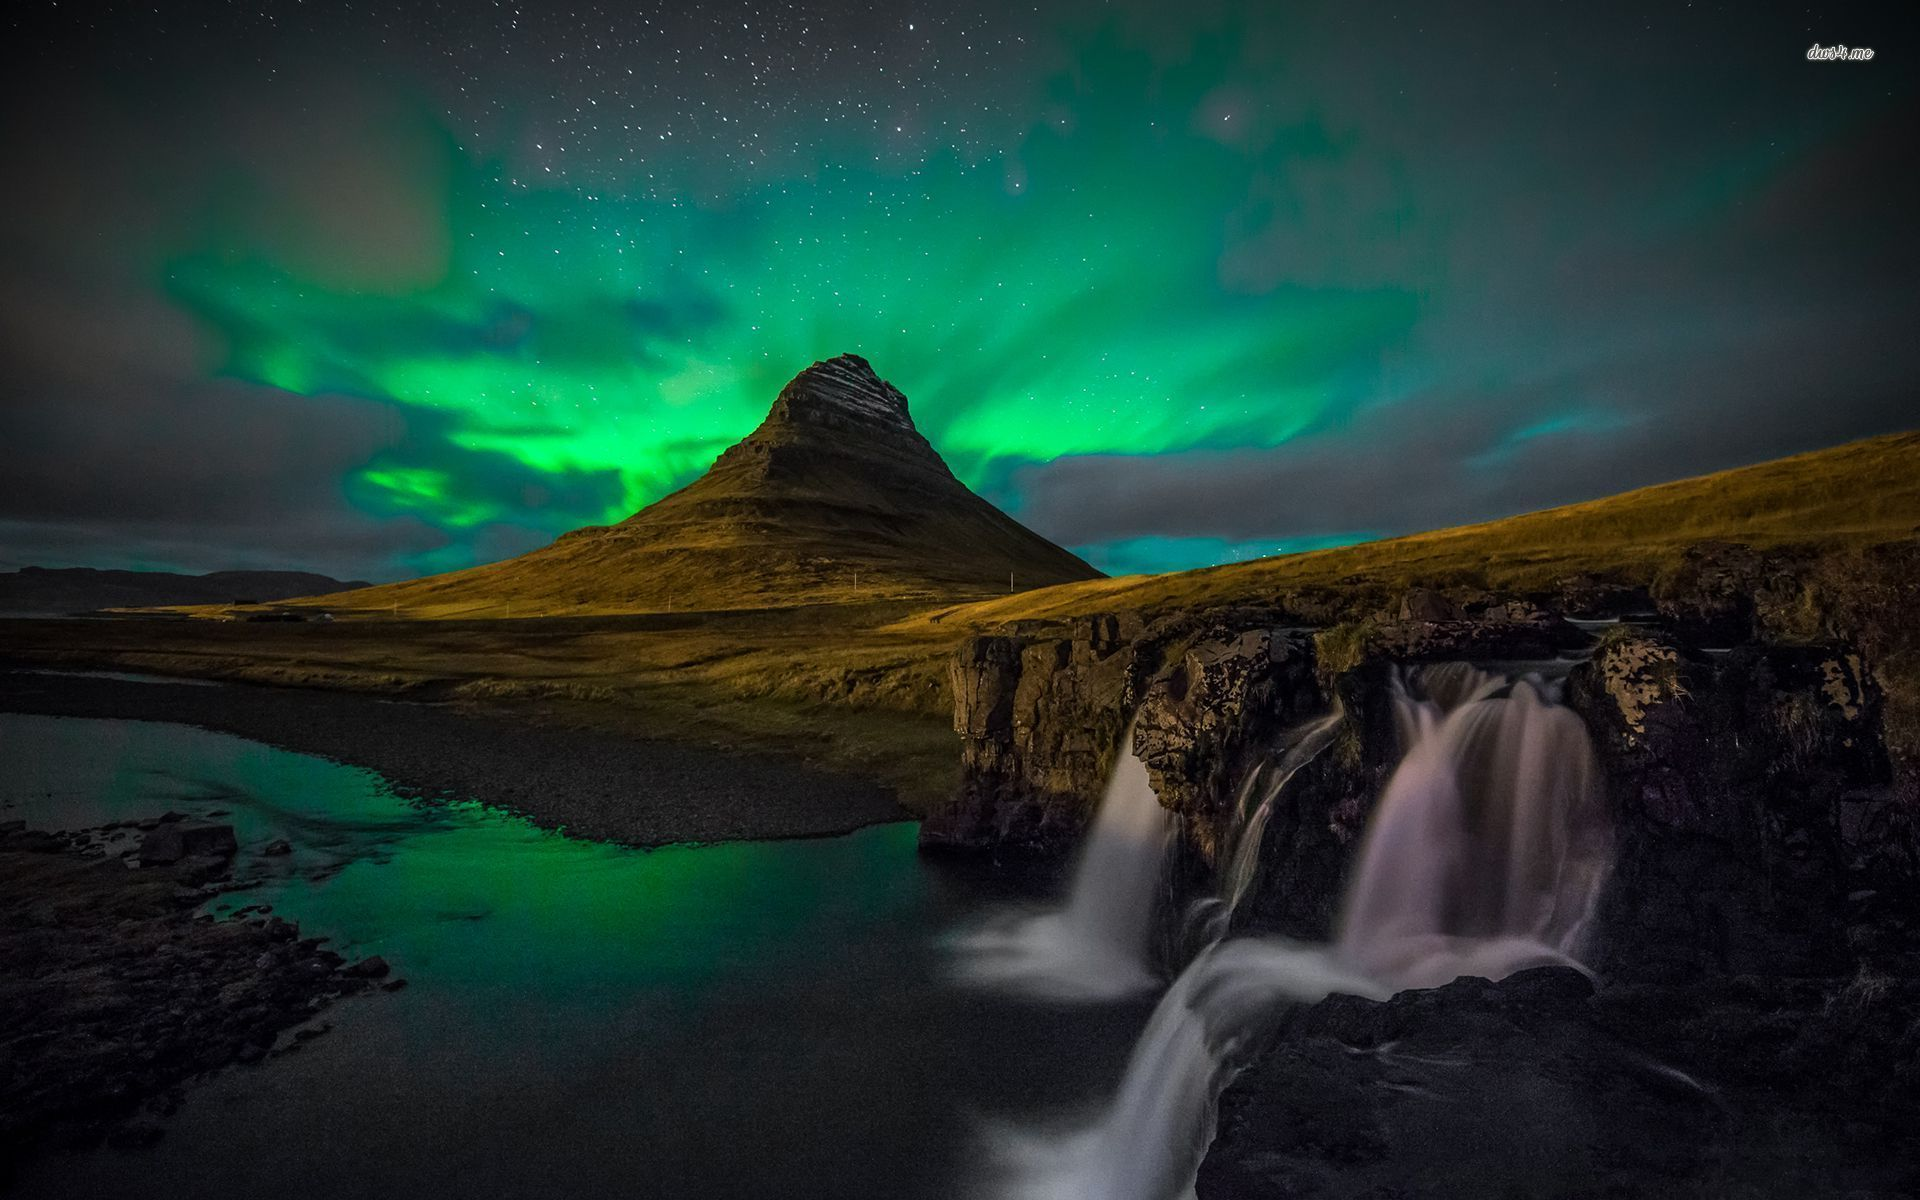 Northern Lights Wallpaper Collection For Free Download